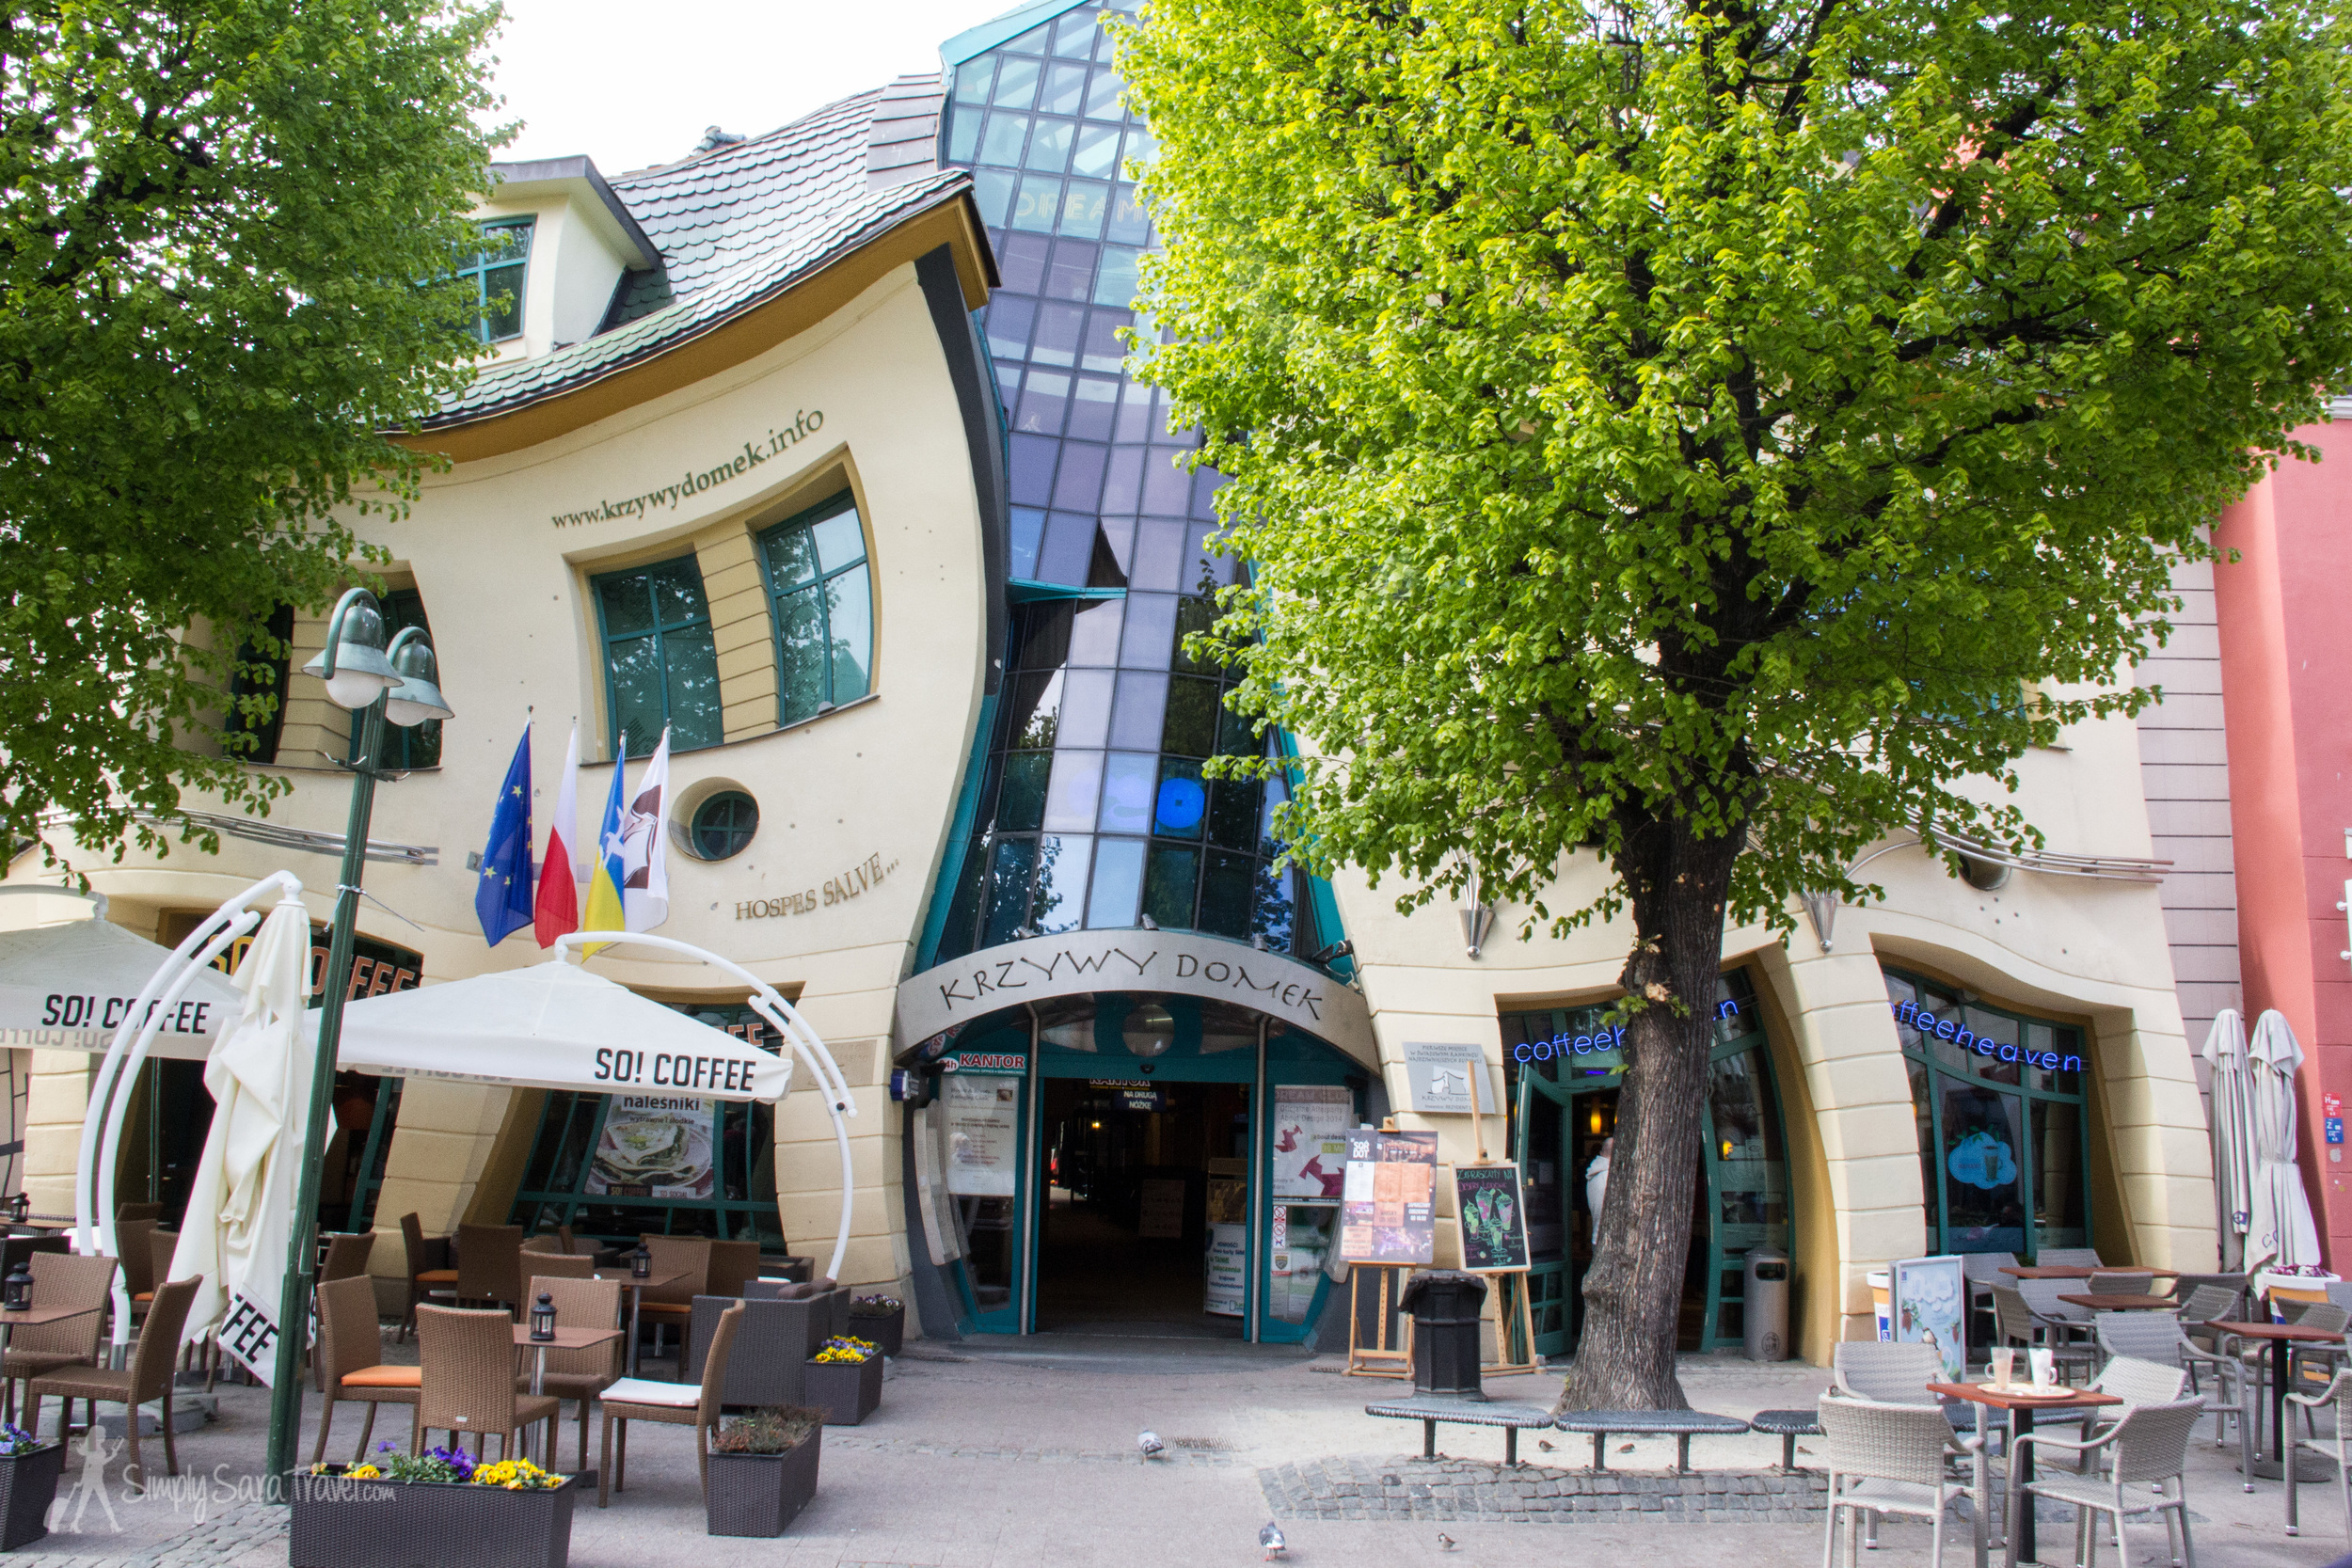 This is Krzywy Domek, the Crooked House, in Sopot. People say that when the house looks normal, it's time to stop drinking! (I imagine this happens more often during the summertime when the town is more alive...)